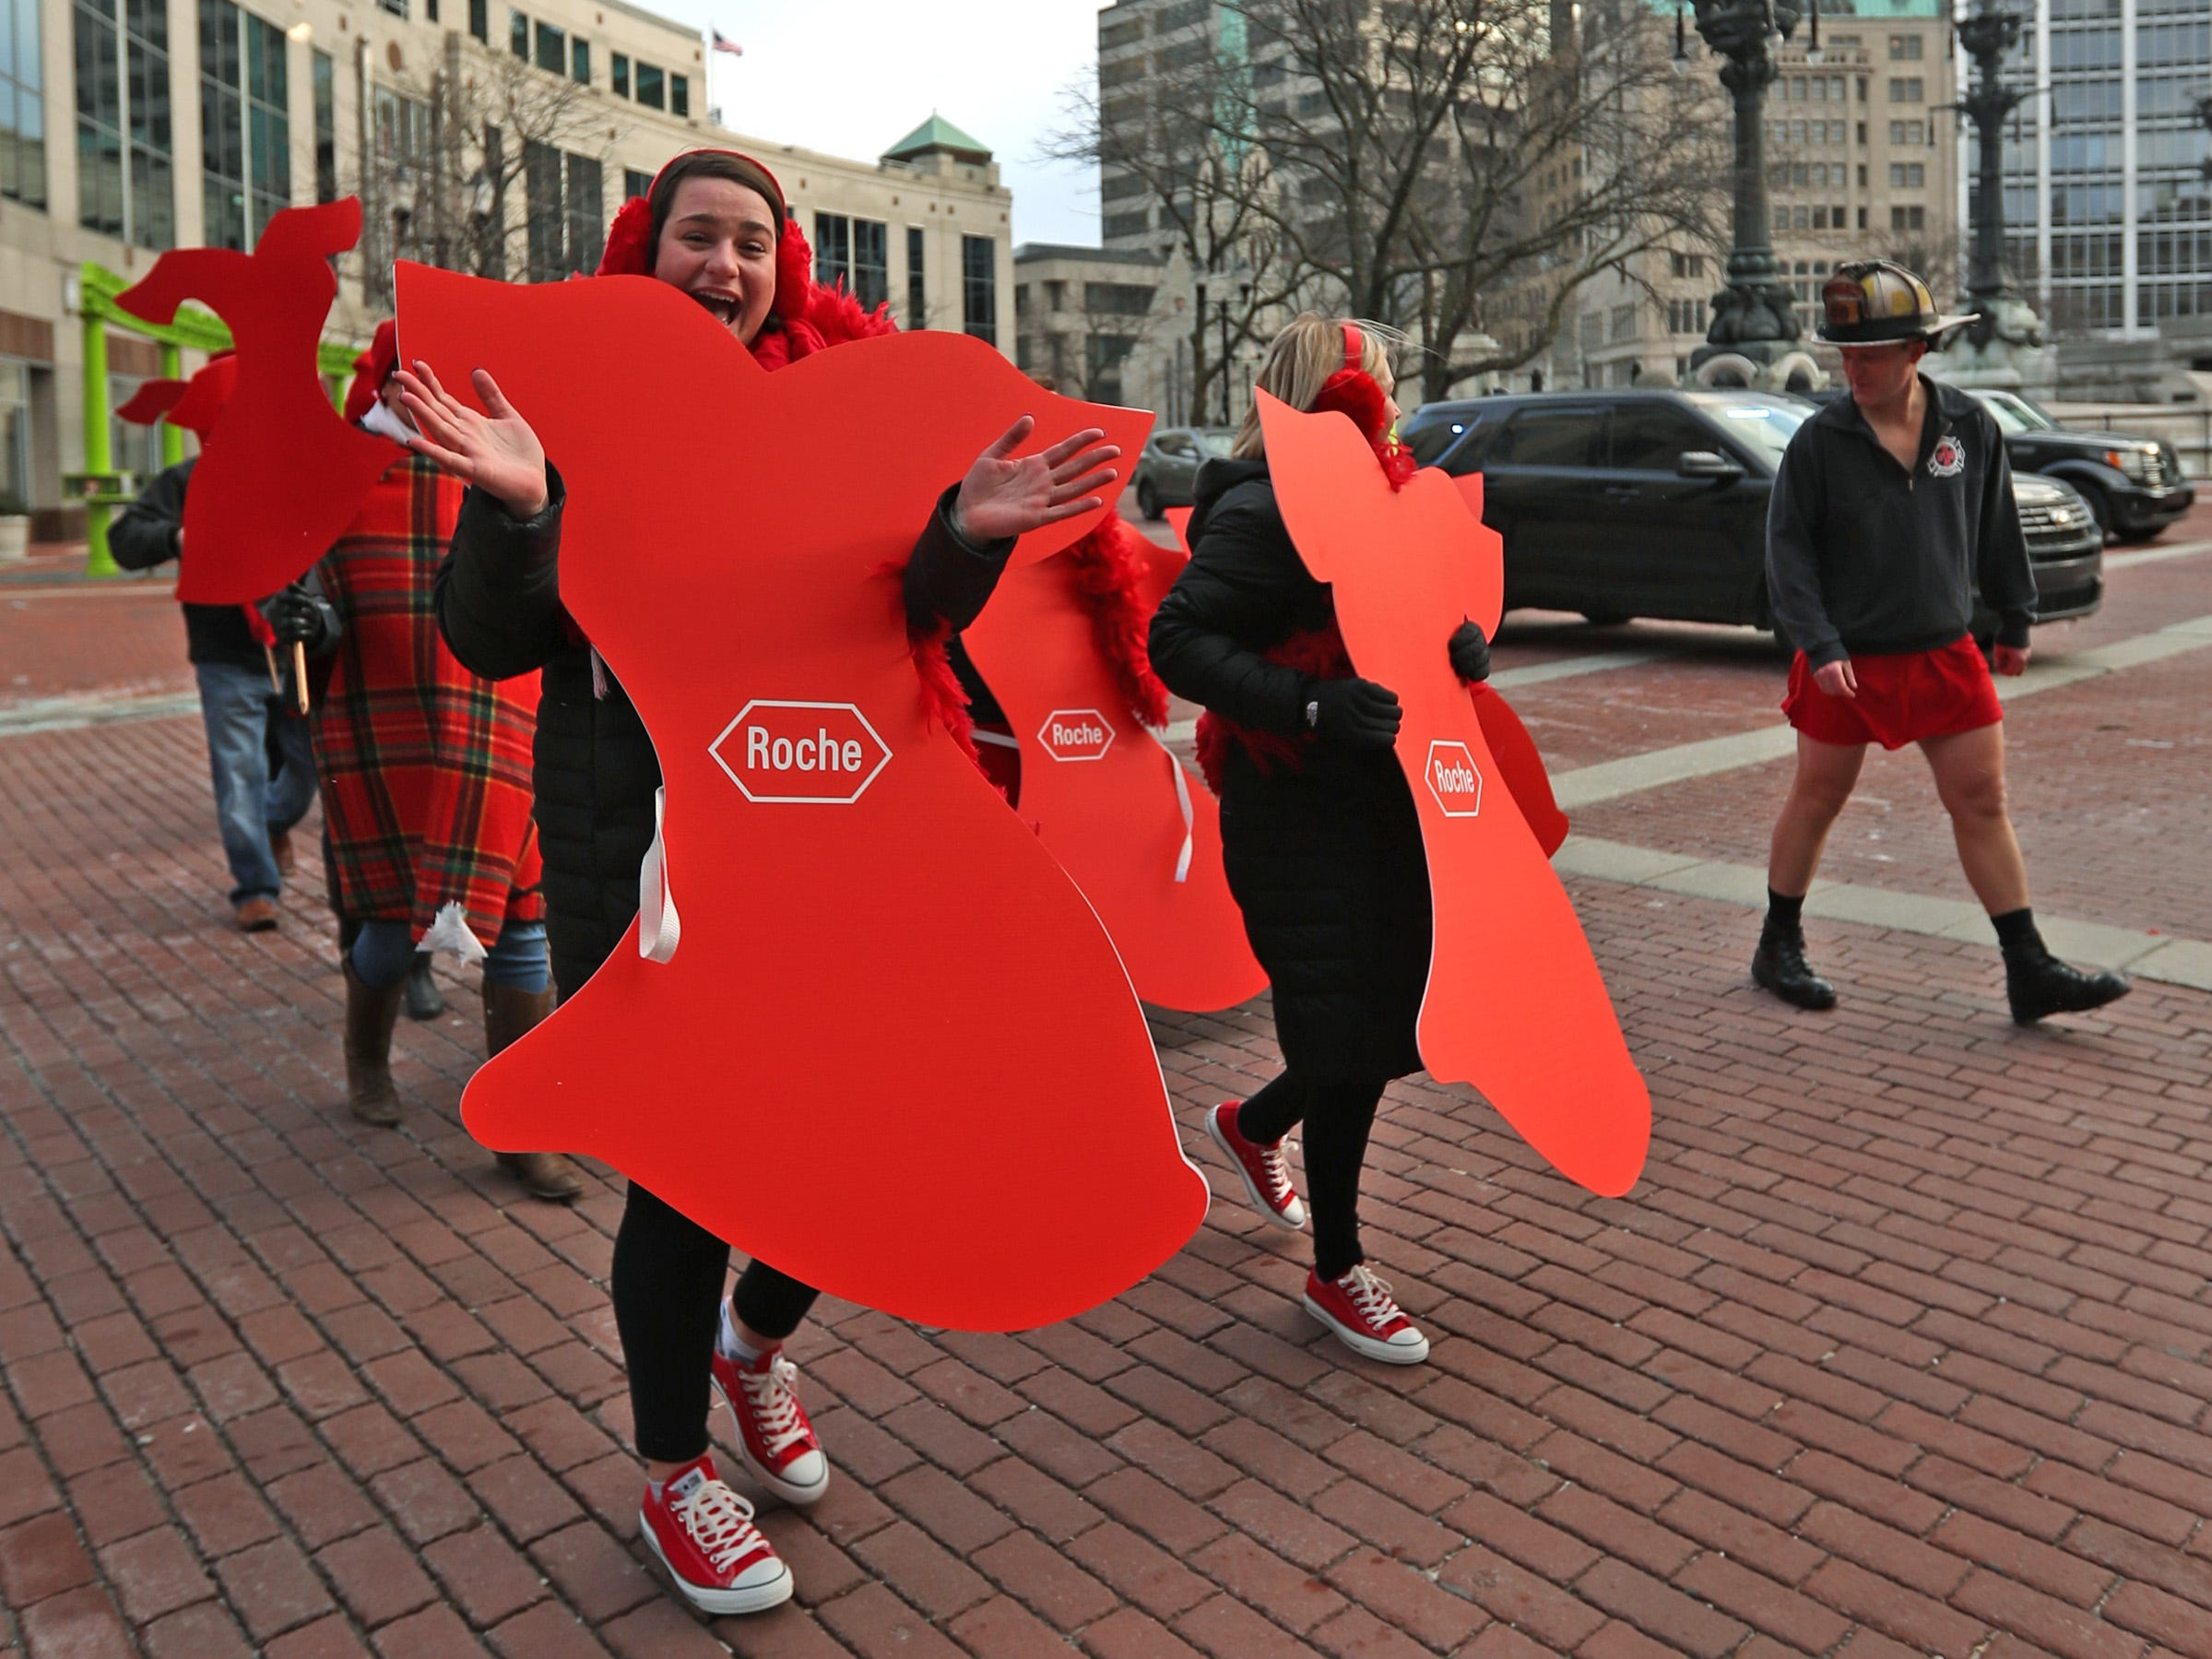 Maggie Sullivan, left, with Roche, joins others in red during a brisk walk around Monument Circle for the Red Dress Dash, Friday, Feb. 8, 2019.  The American Heart Association put on the seventh annual event to support women's heart health.  The event raises awareness for the American Heart Association's Go Red For Women movement.  Heart disease is the leading cause of death among women.